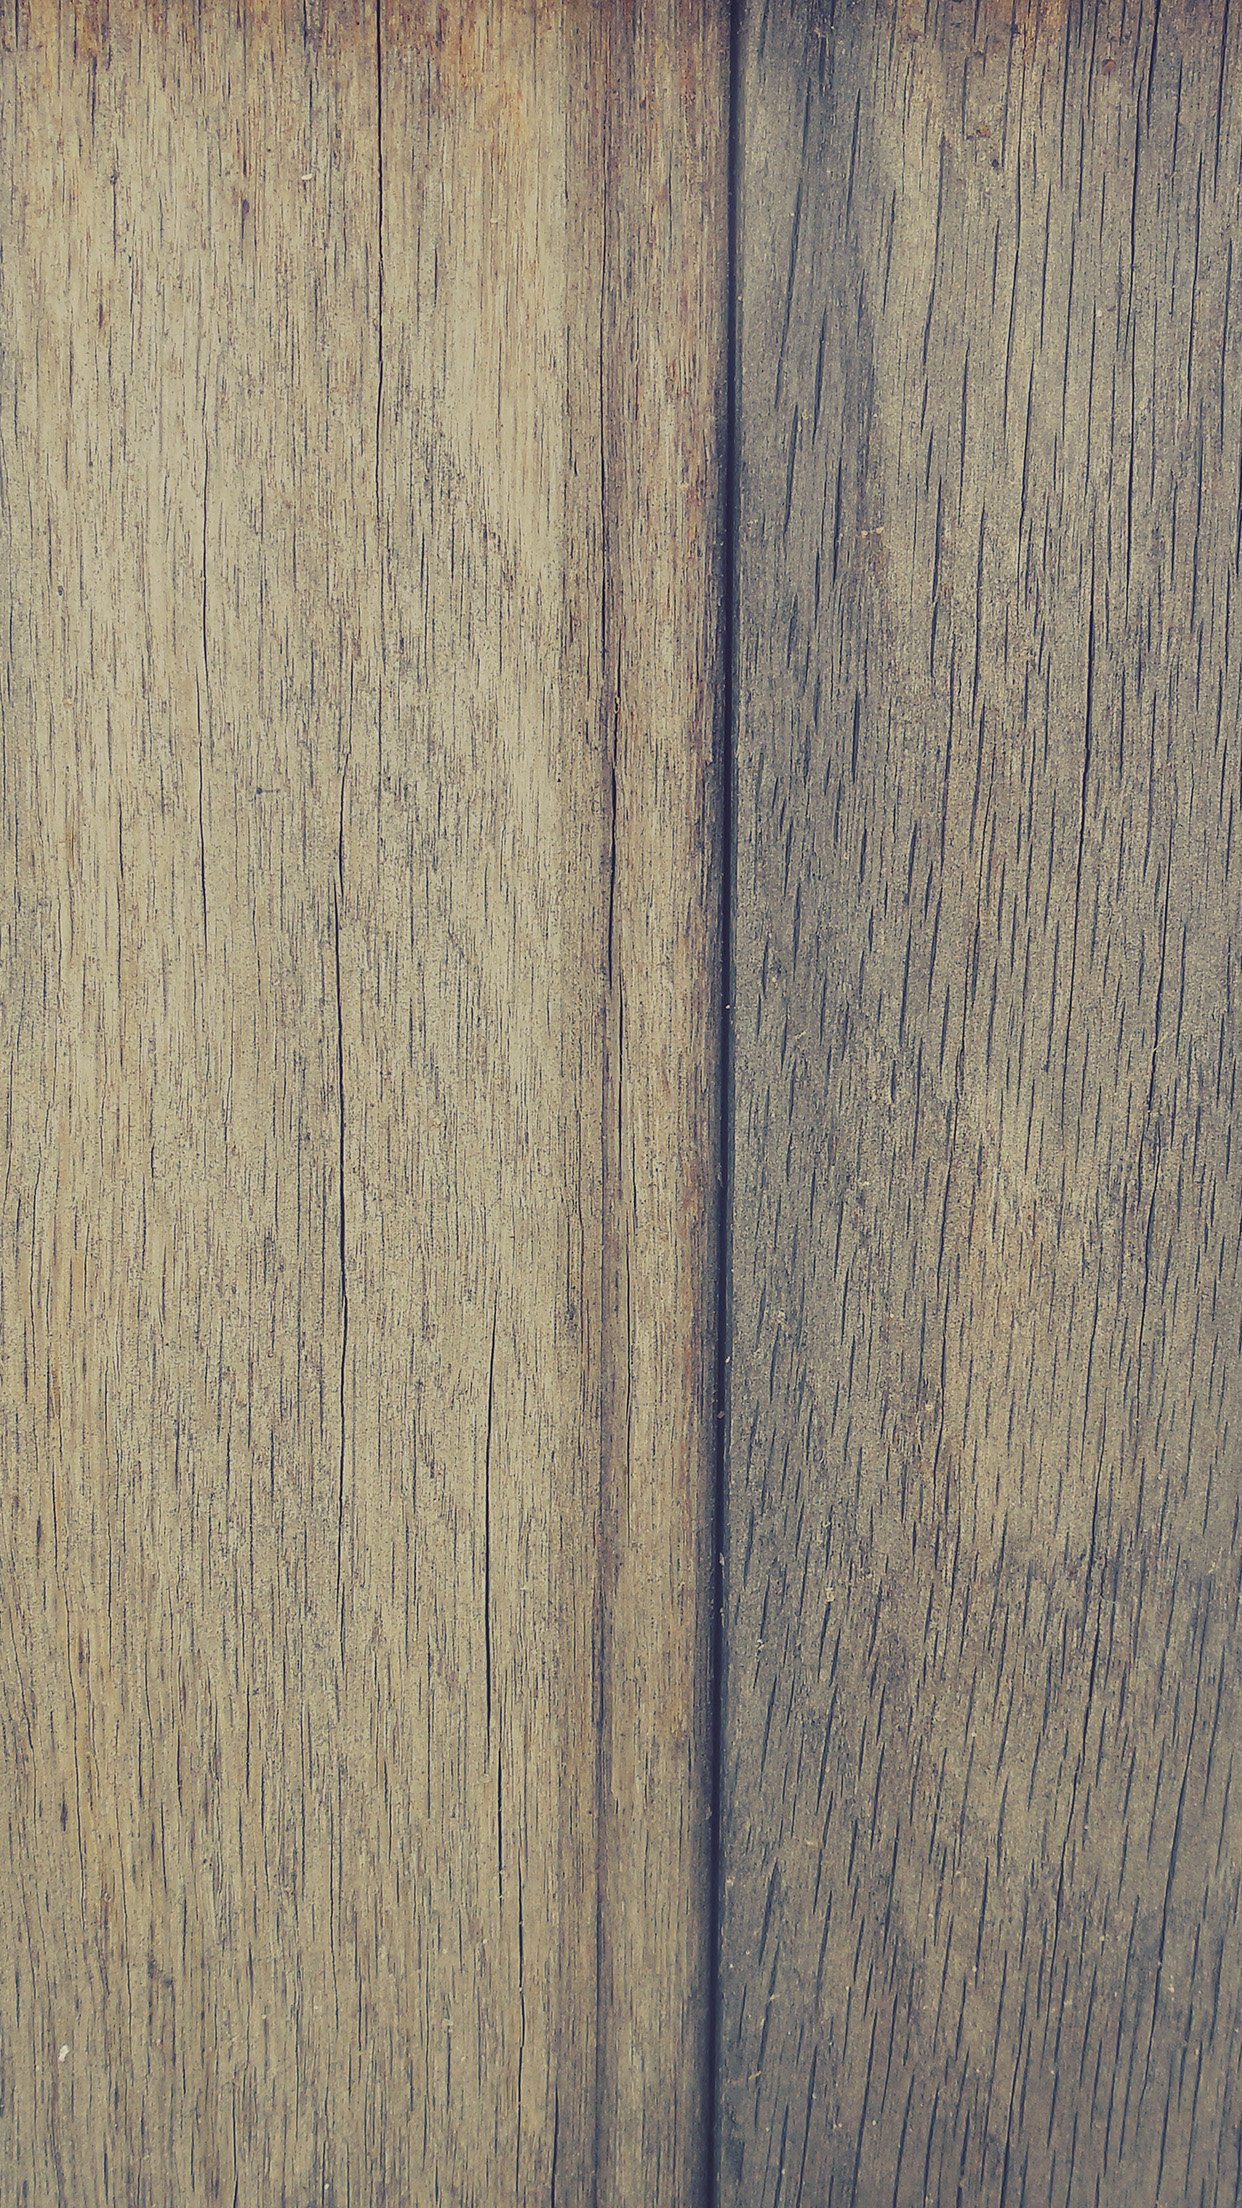 Wood Line Nature Wall Pattern Android Wallpaper Android Hd